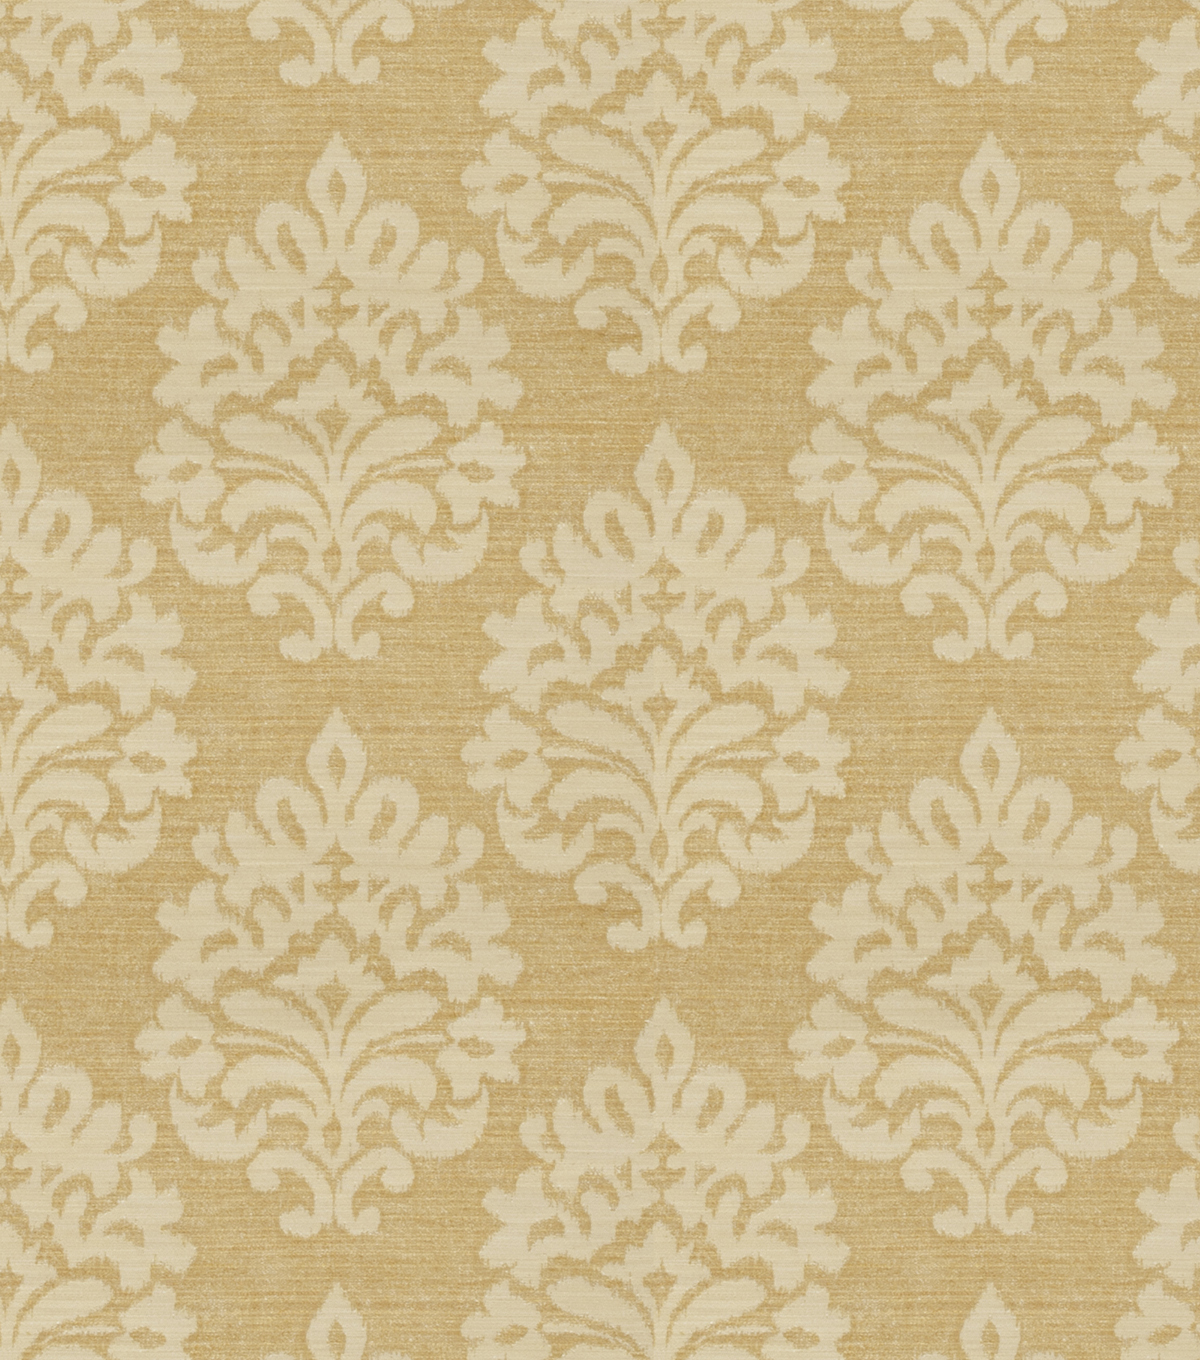 Home Decor 8x8 Fabric Swatch-Eaton Square Wilma Butterscotch